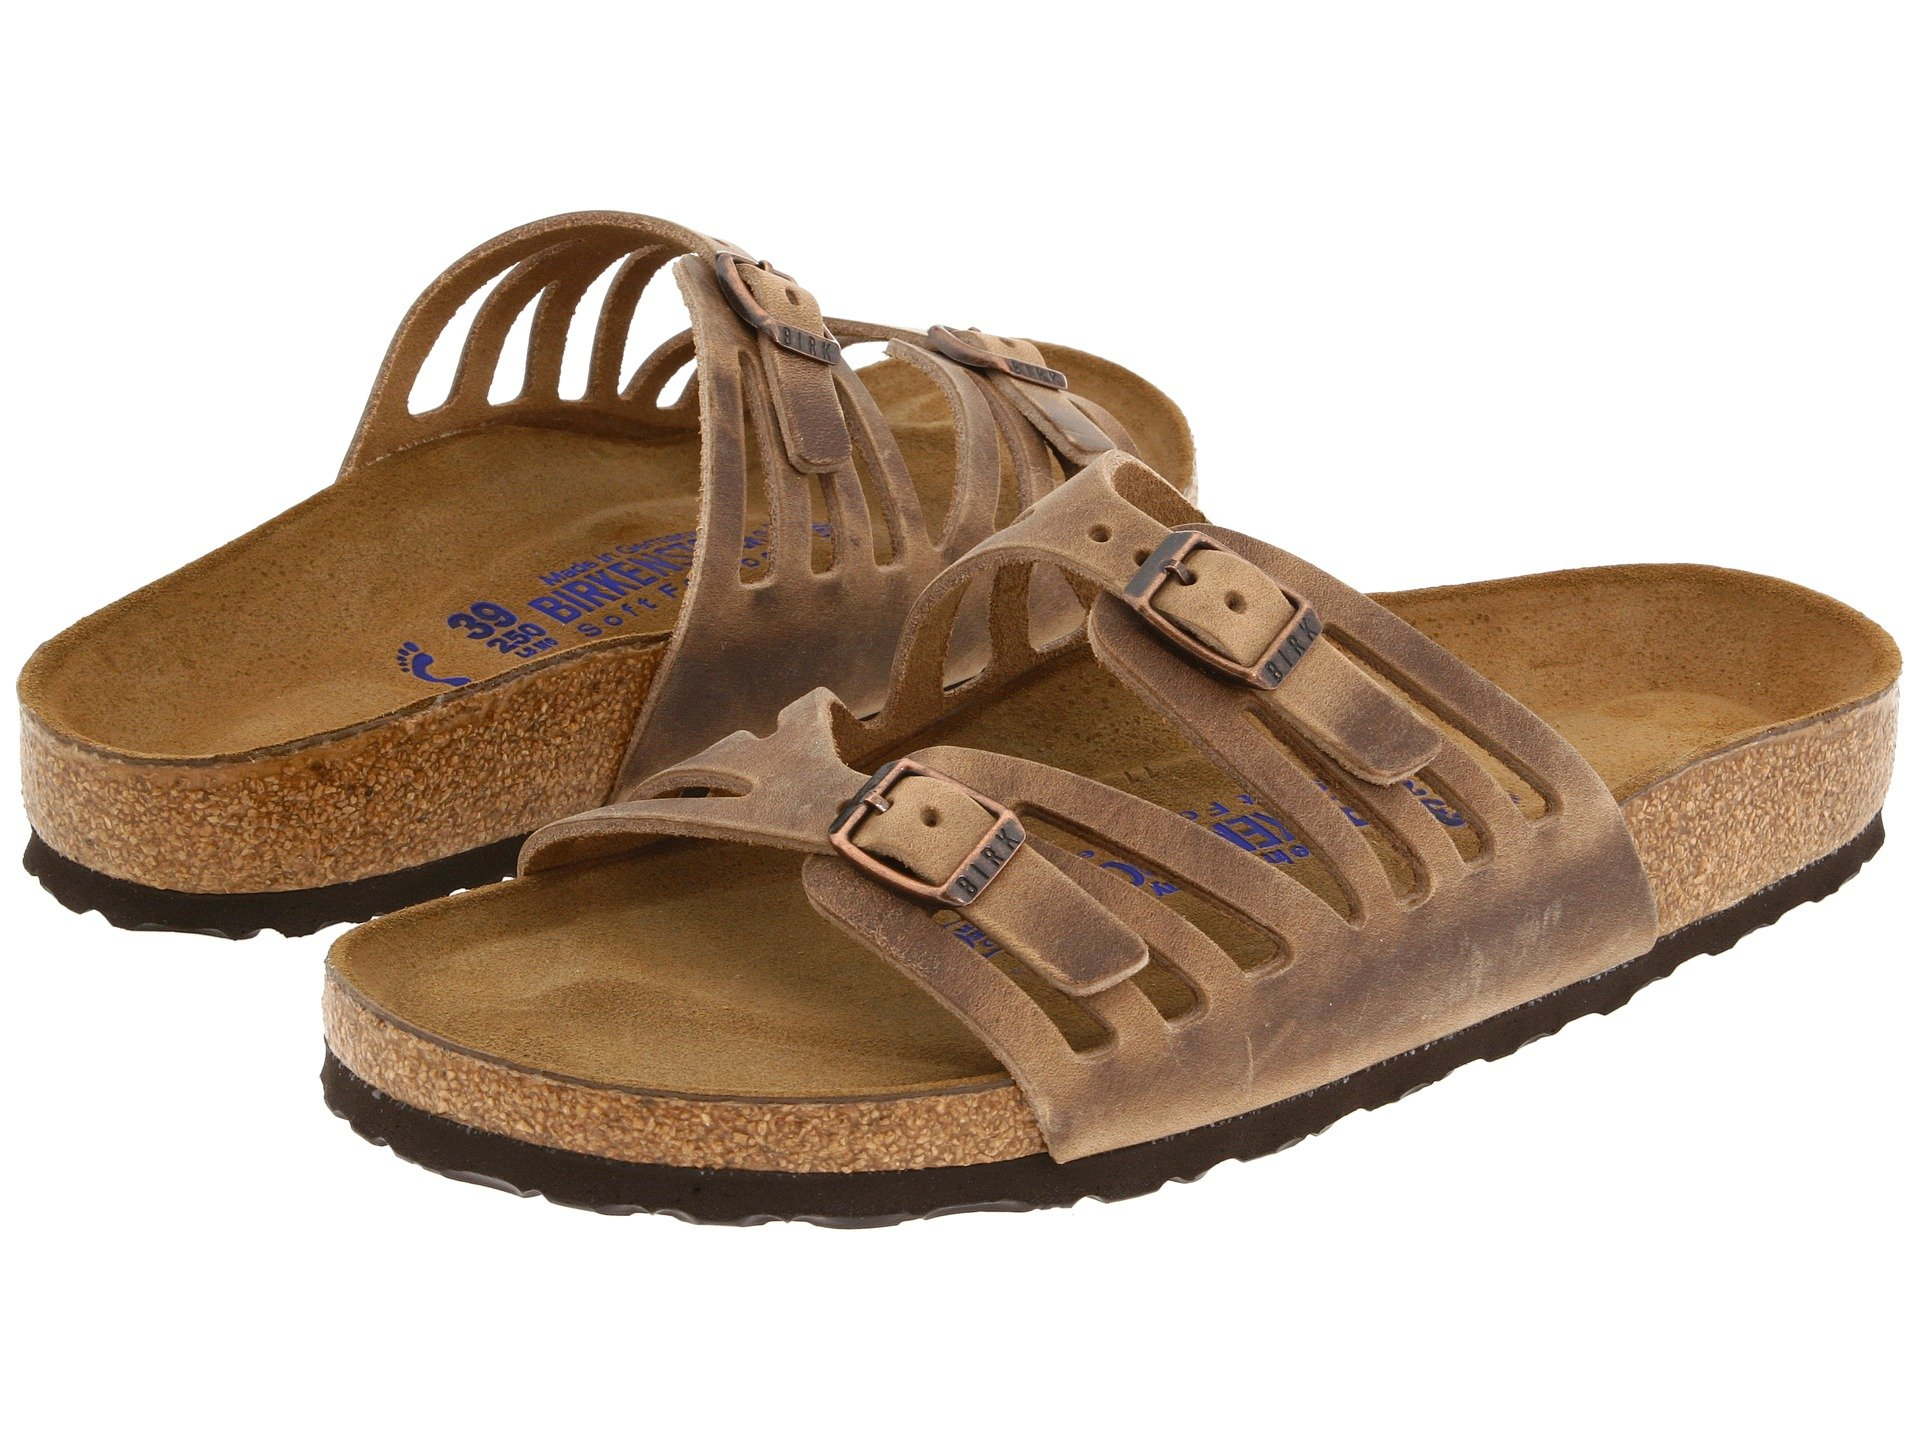 Birkenstock Granada Soft Footbed At Zappos Com